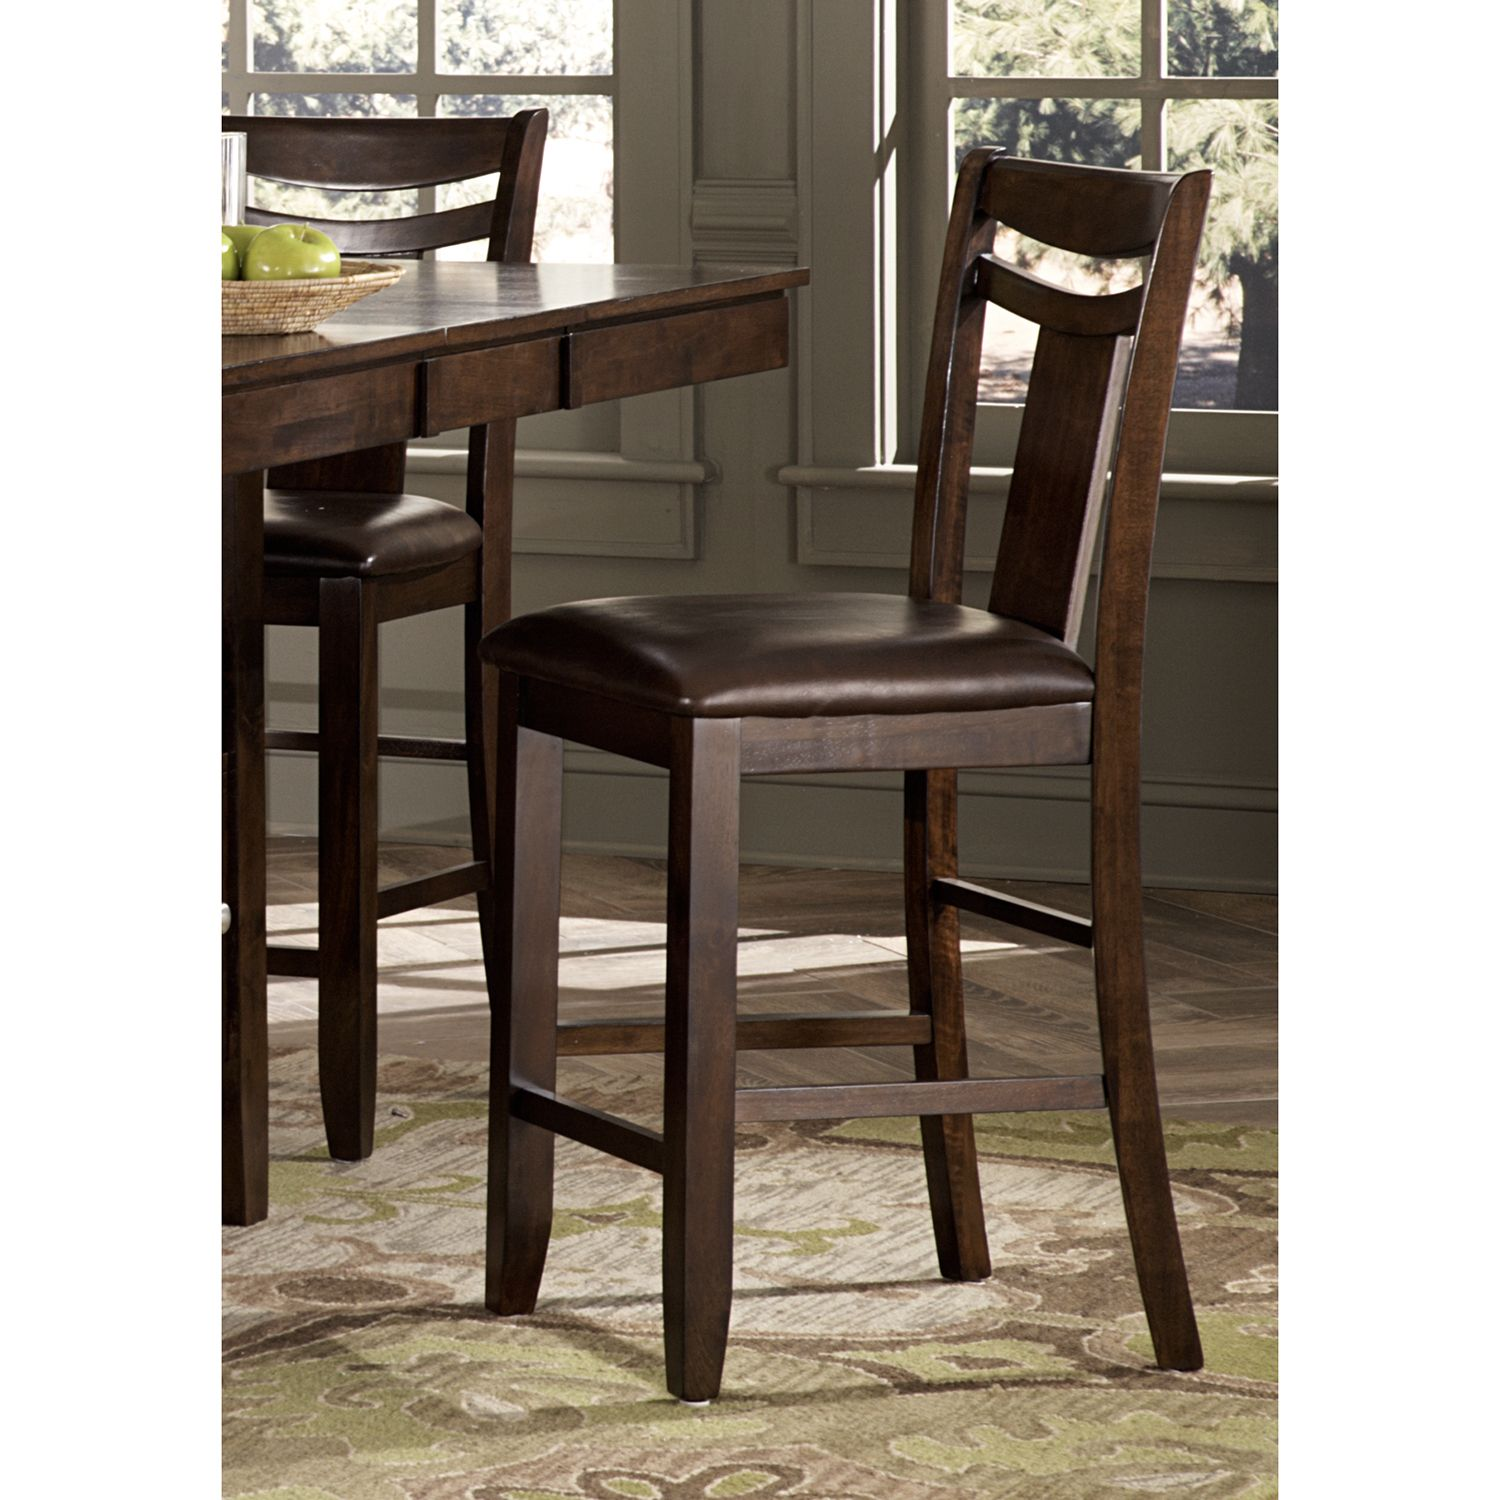 Marsden Dark Brown 24-inch High Back Counter Height Stool by TRIBECCA HOME  (Set of 2) by INSPIRE Q